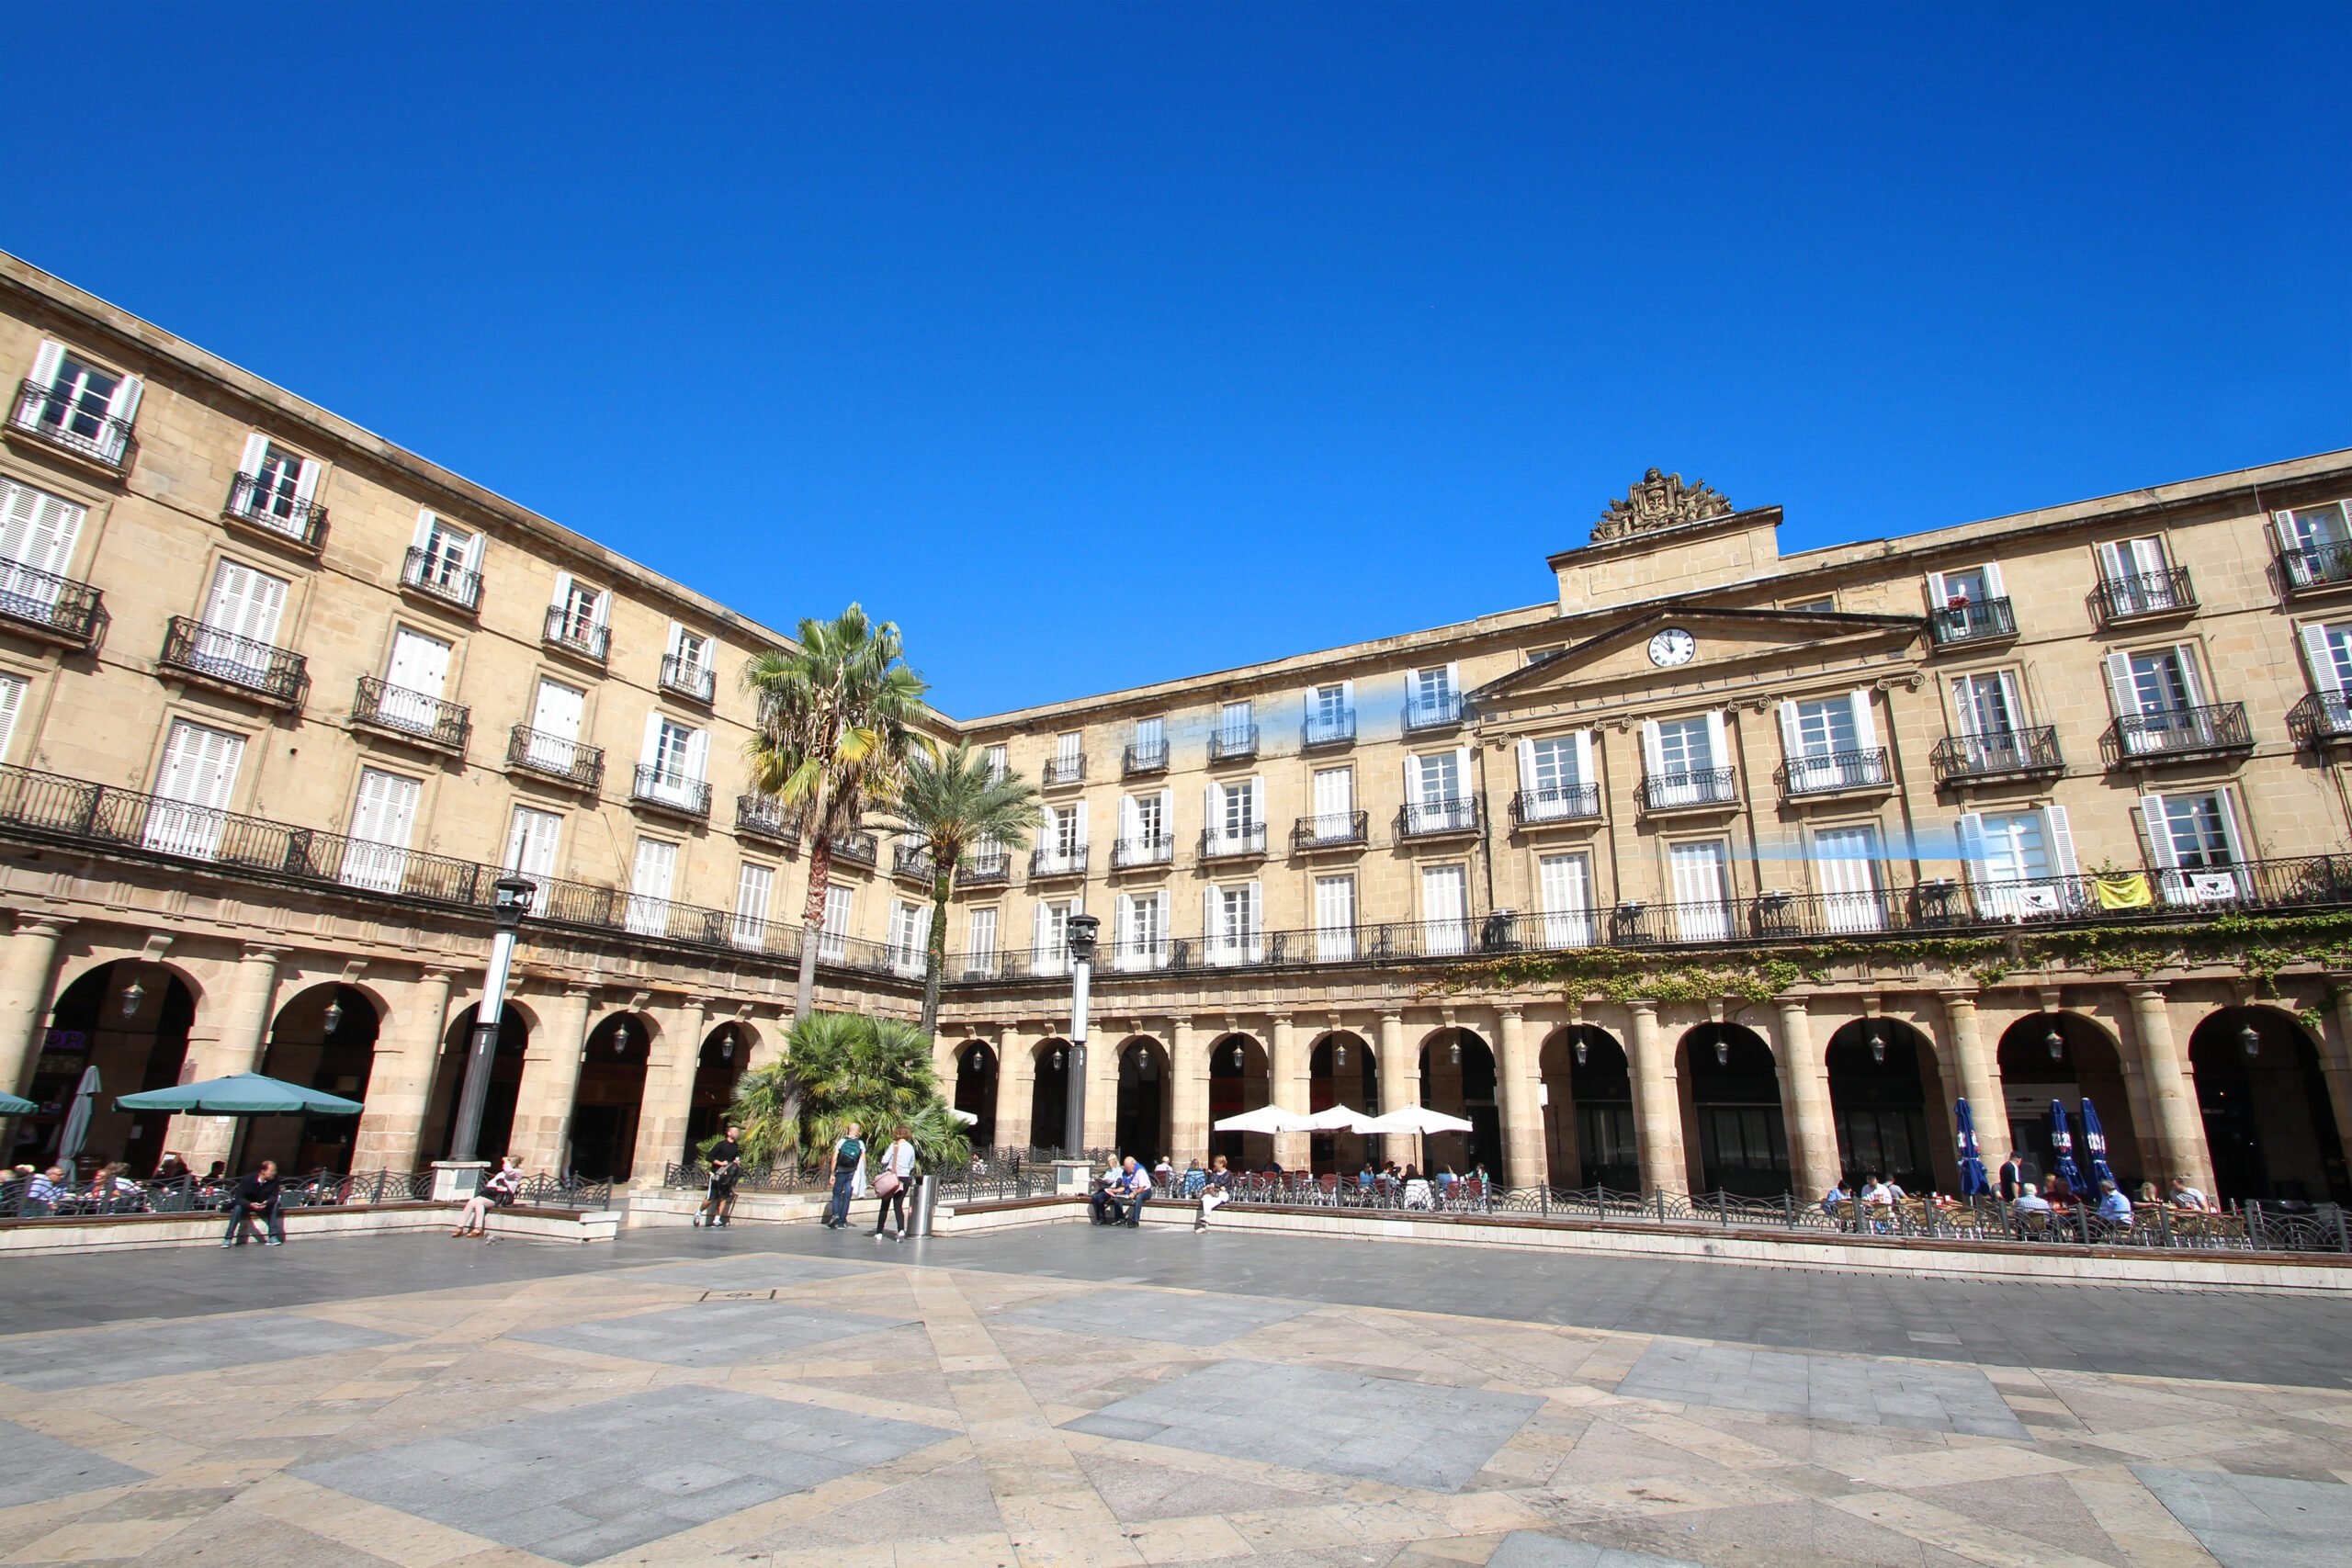 Disover The Famous Plaza Nueva On The Bilbao Old City Tour